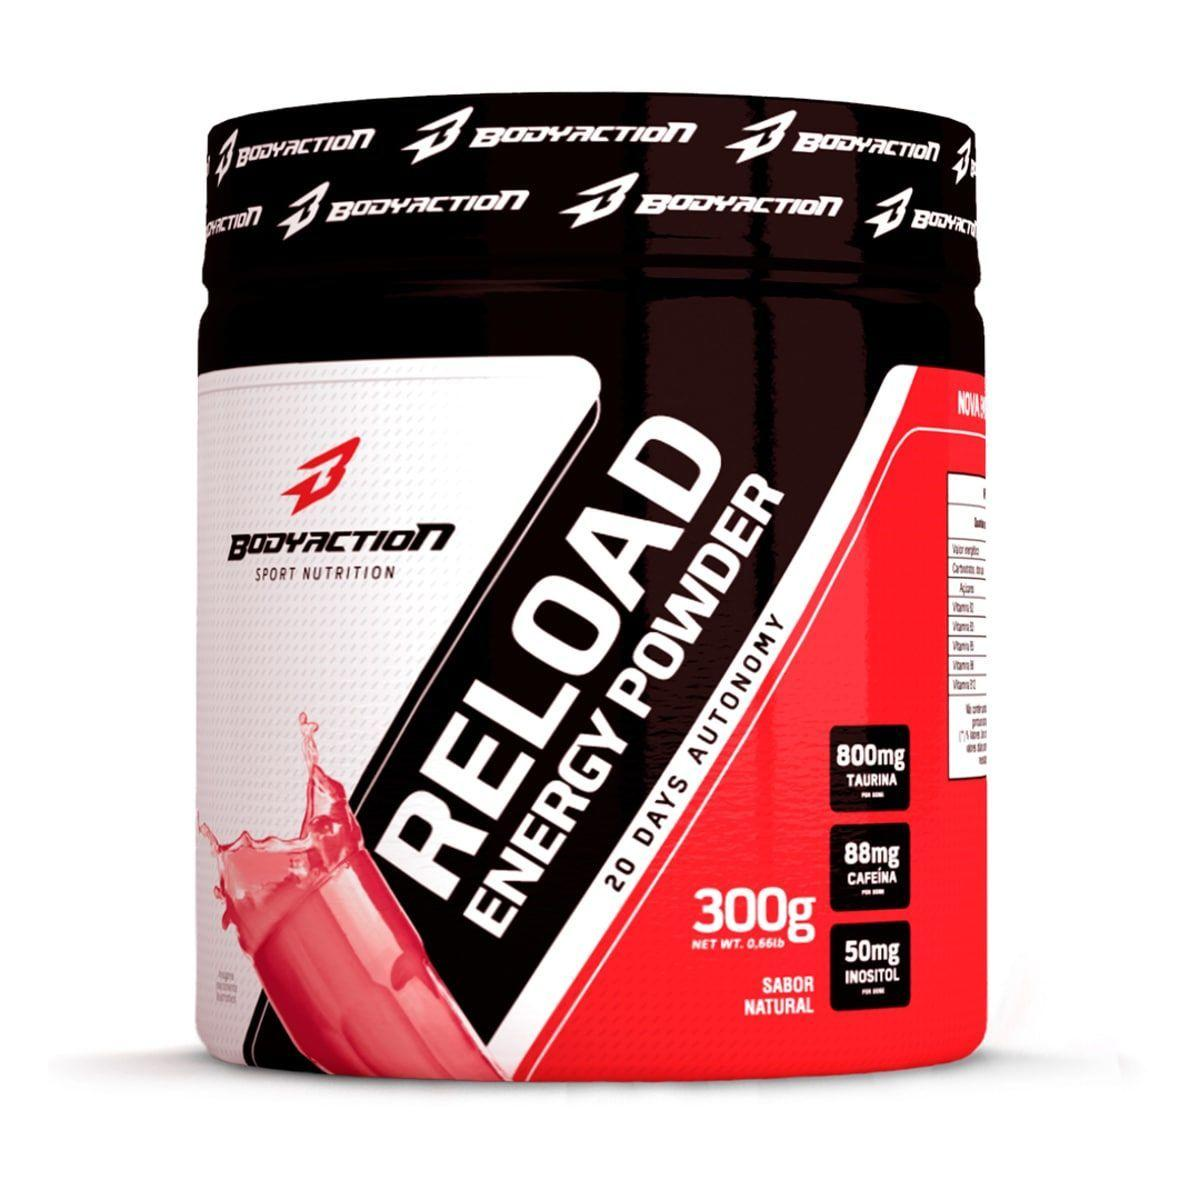 RELOAD ENERGY POWDER (300G) - BODY ACTION